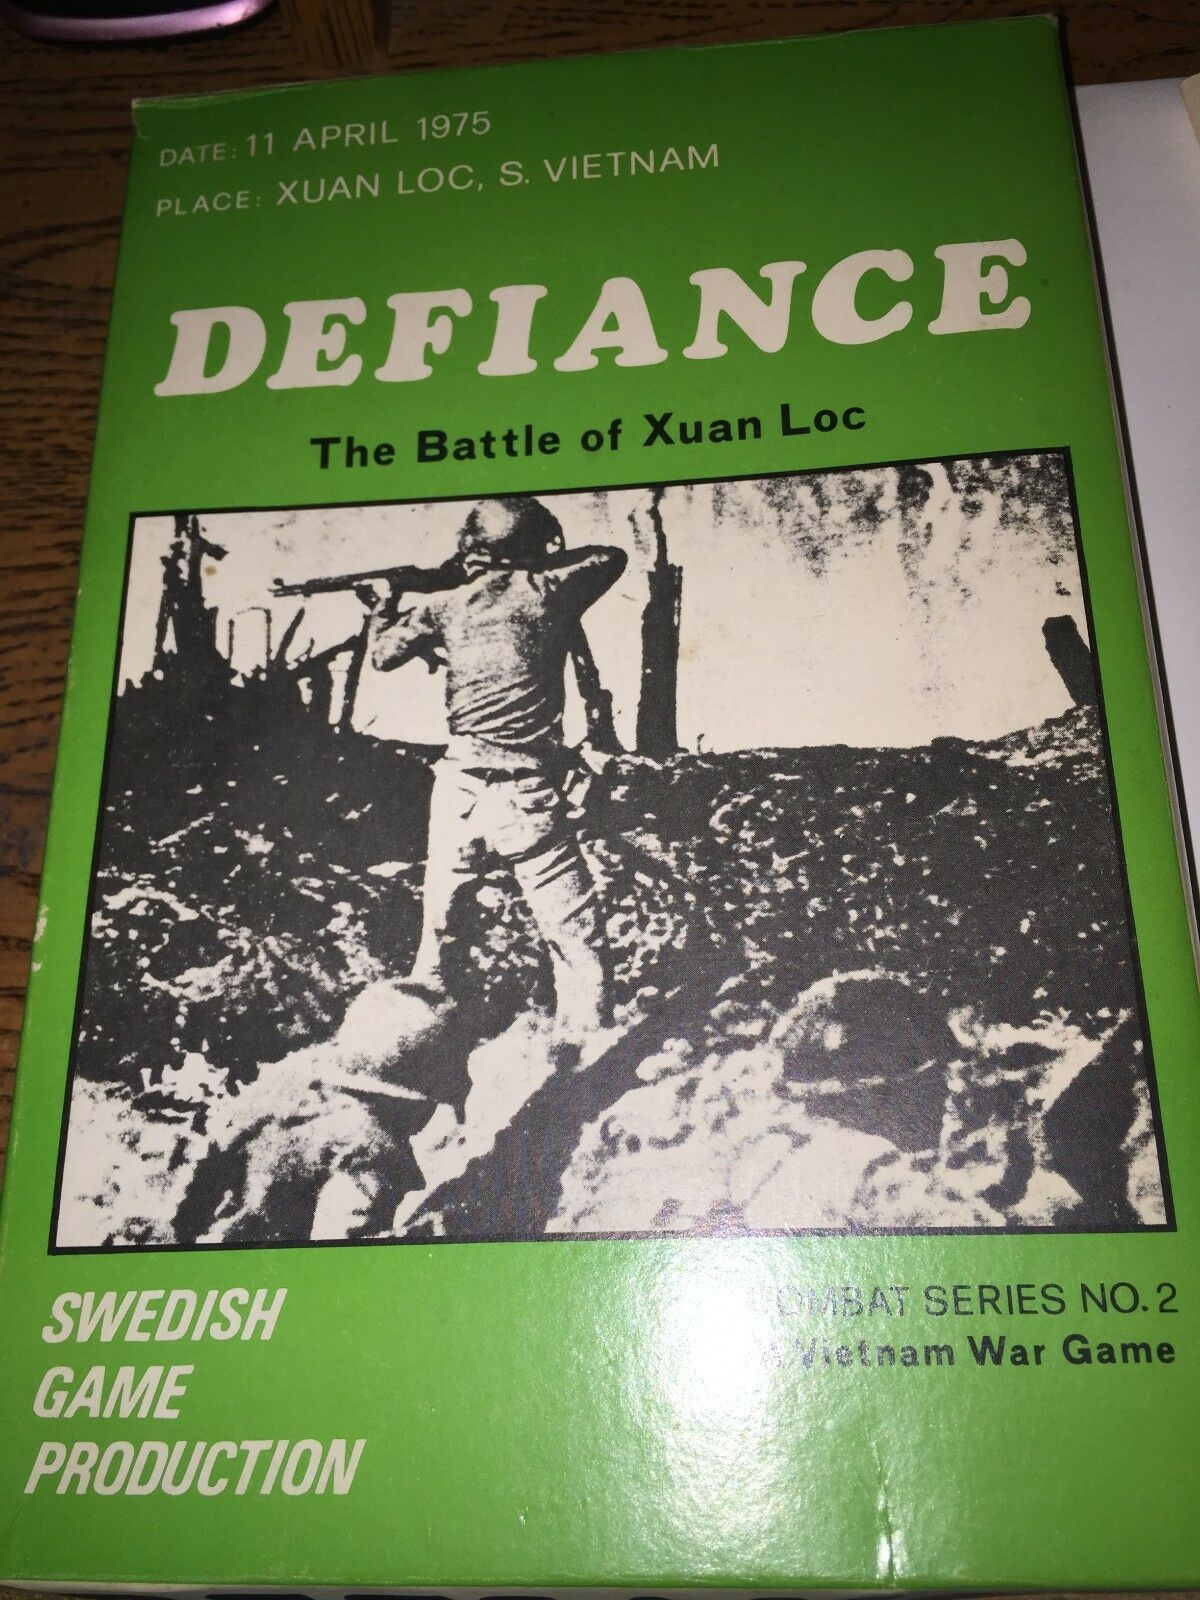 DEFIANCE DEFIANCE DEFIANCE THE BATTLE OF XUAN LOC - SWEDISH GAME PRODUCTION - RARE AND UNPUNCHED  a0e3ad